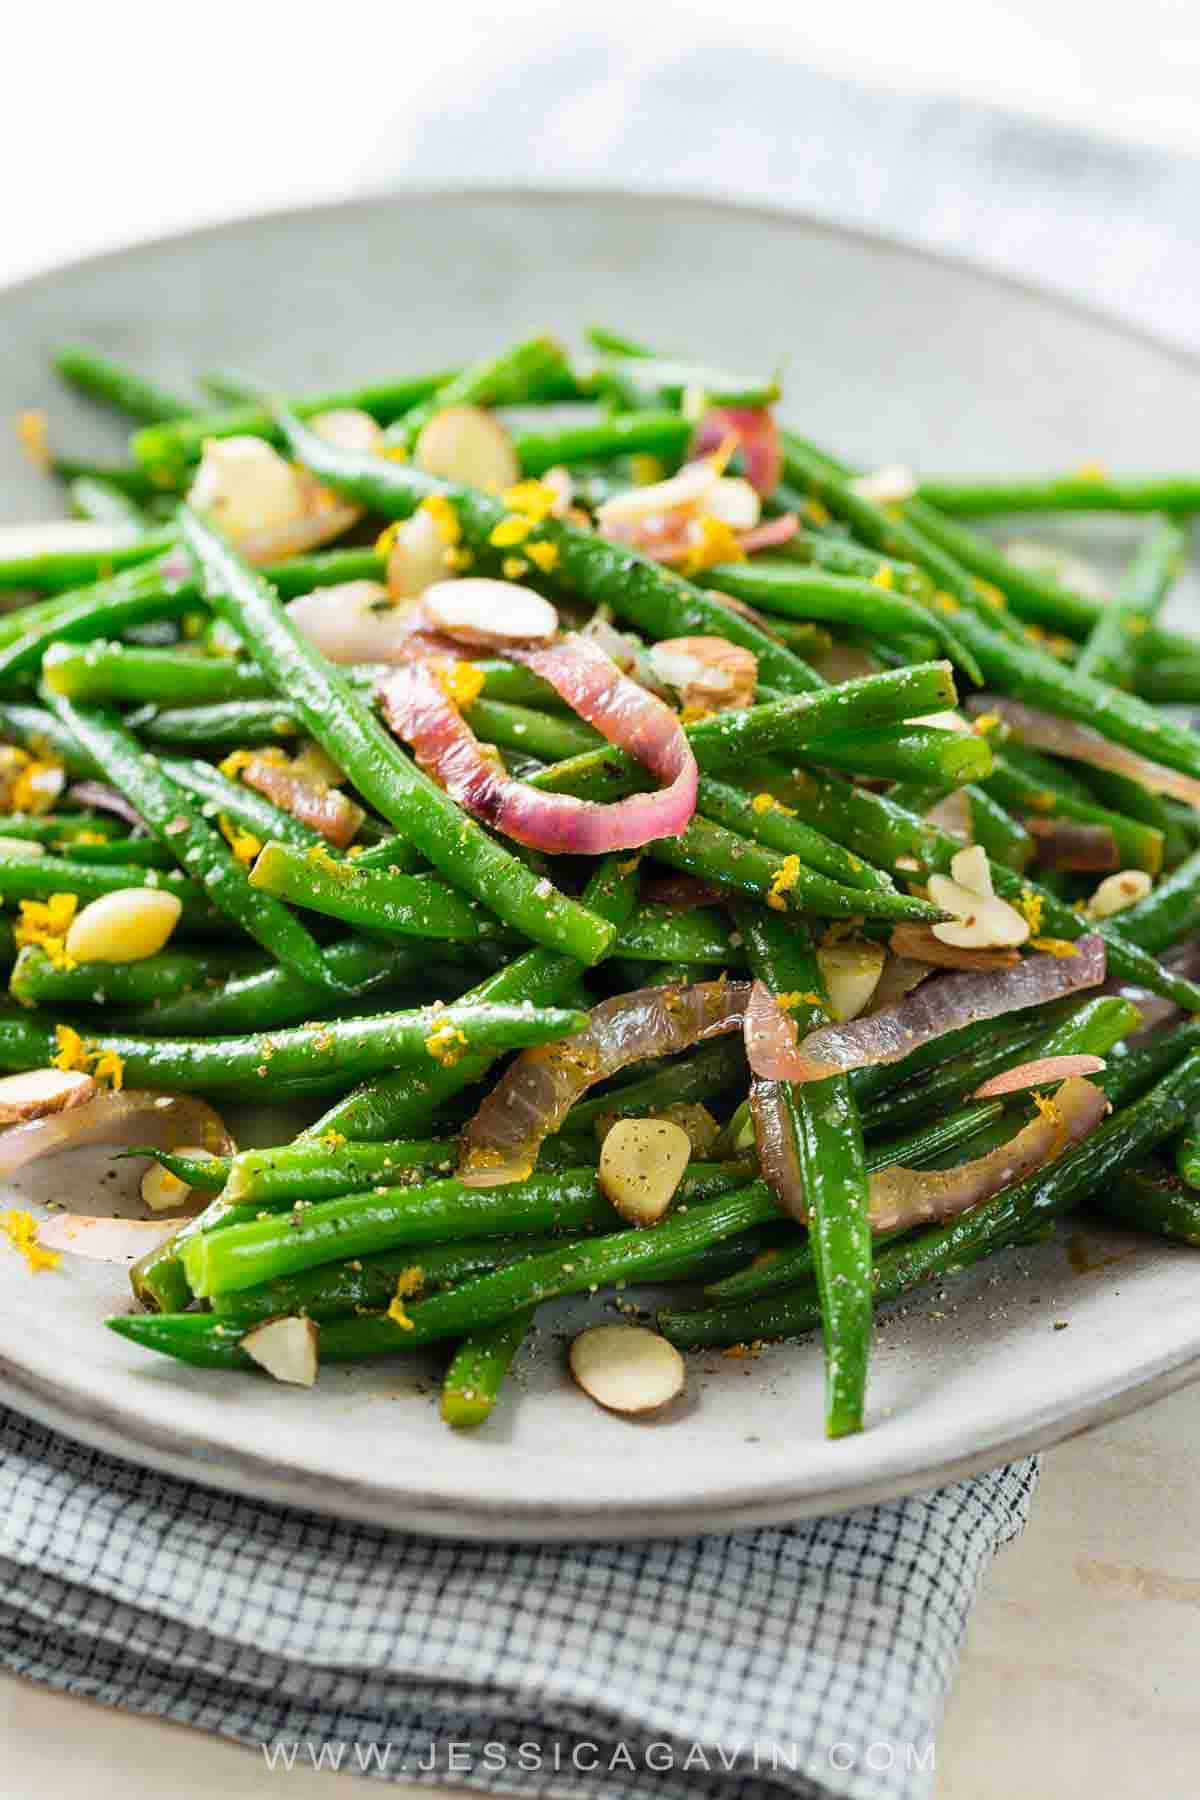 Green beans with almonds are a fast and healthy side dish. Sautéed with garlic, onions and orange juice, topped with crunchy nuts. #greenbeans #sidedish #lowcarb #vegan